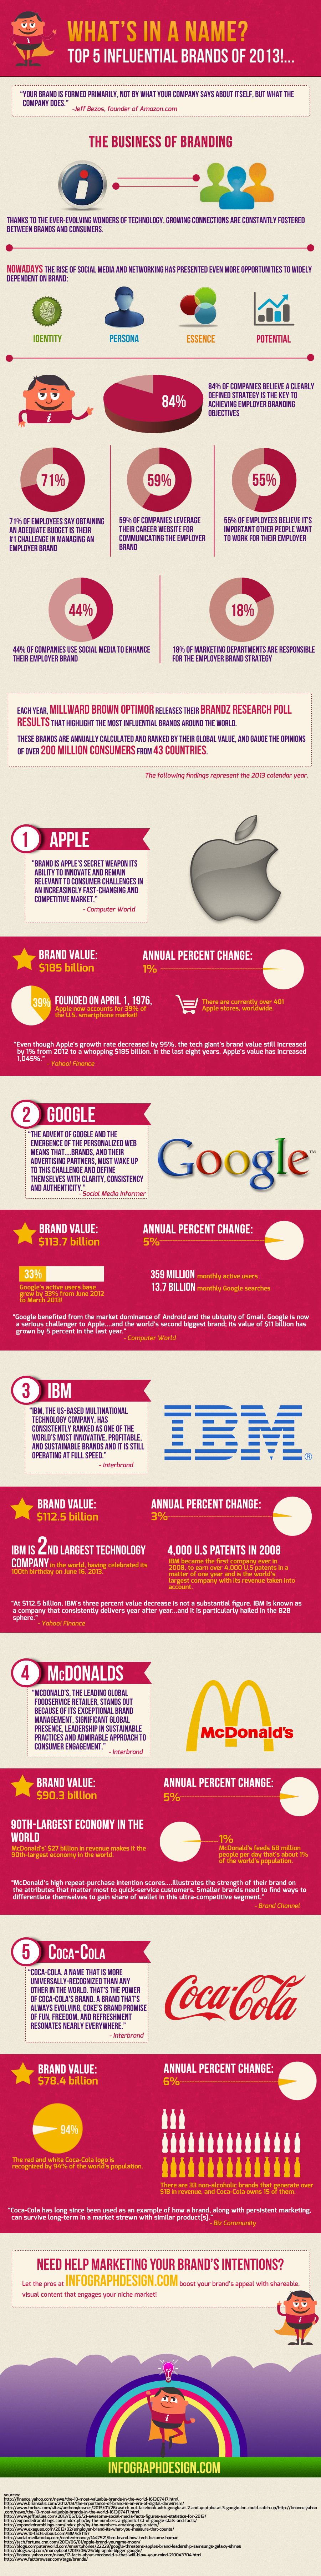 What's In a Name? Top 5 Influential Brands of 2013